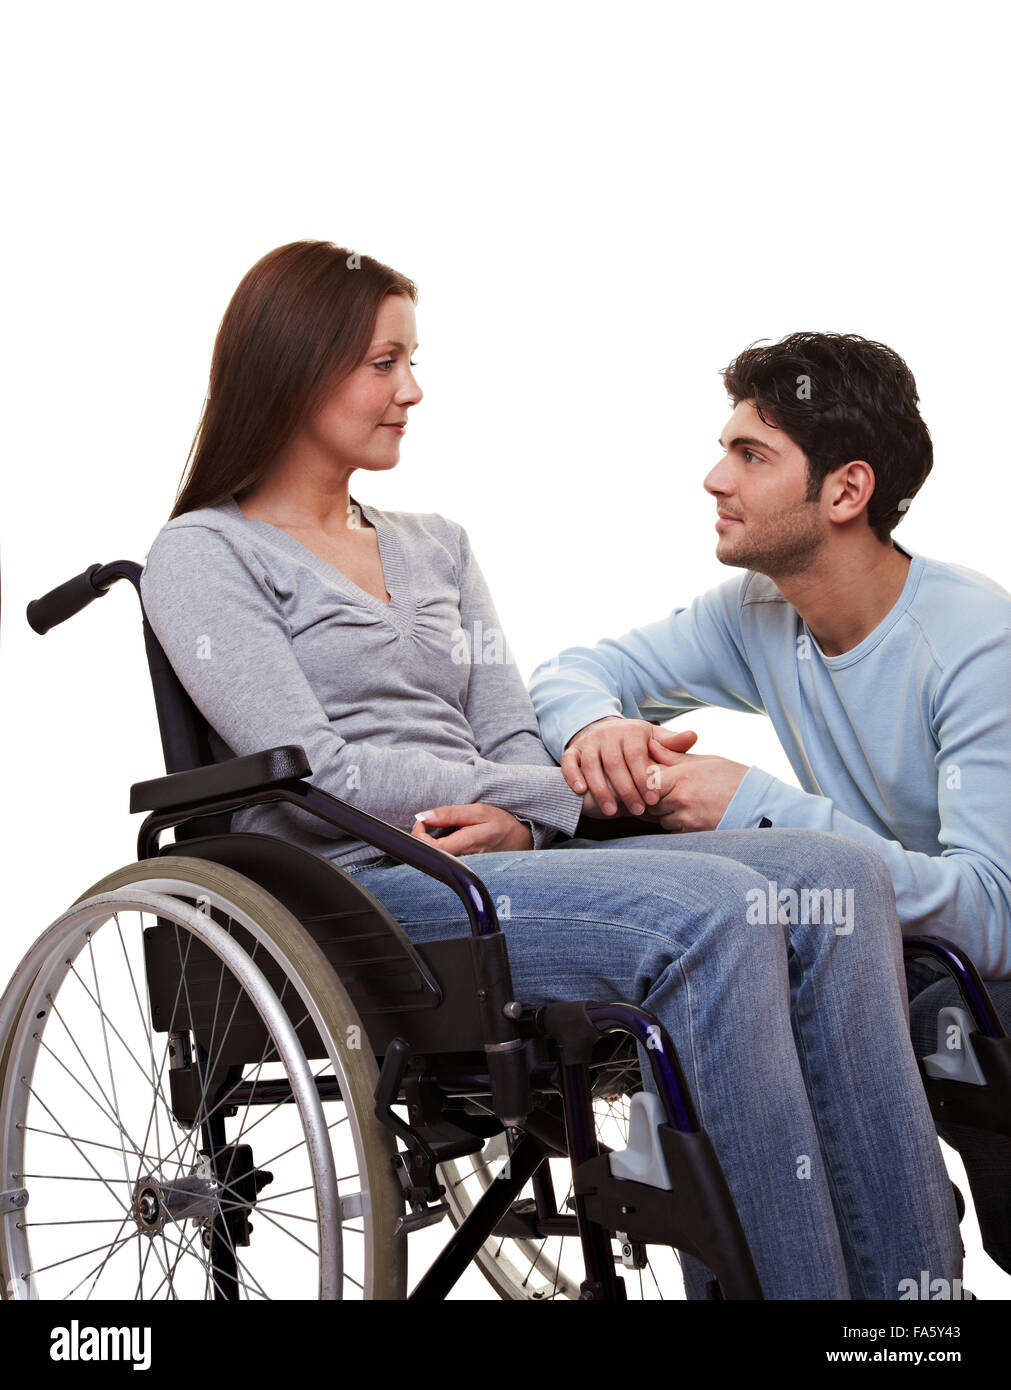 woman wheelchair car stockfotos woman wheelchair car bilder alamy. Black Bedroom Furniture Sets. Home Design Ideas